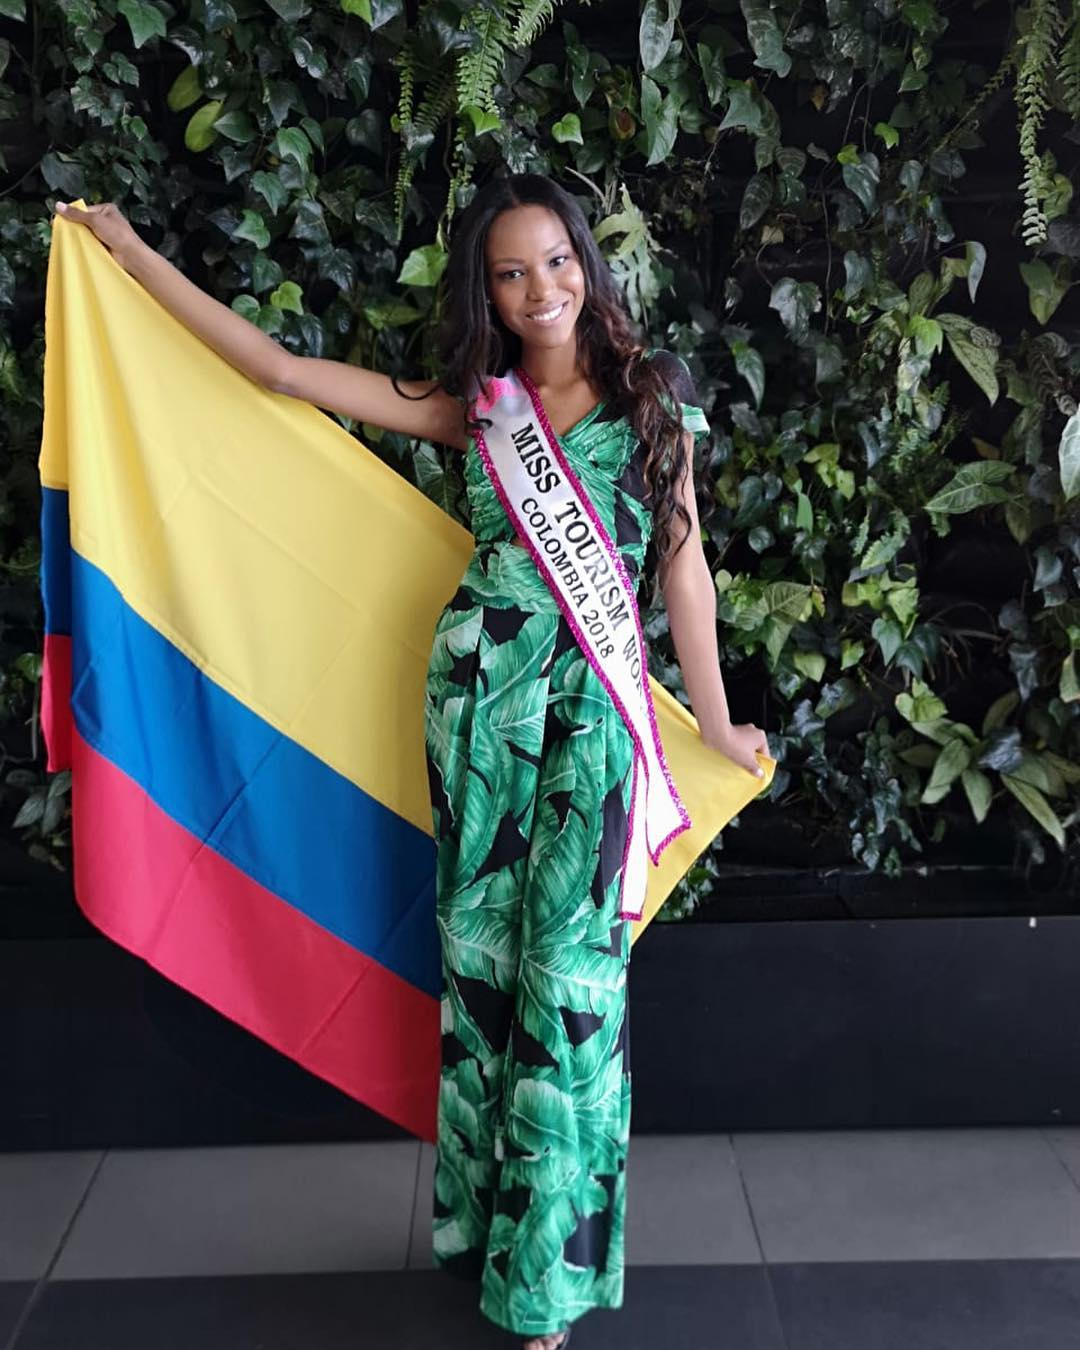 katherine huila, miss tourism world colombia 2018. 41014910